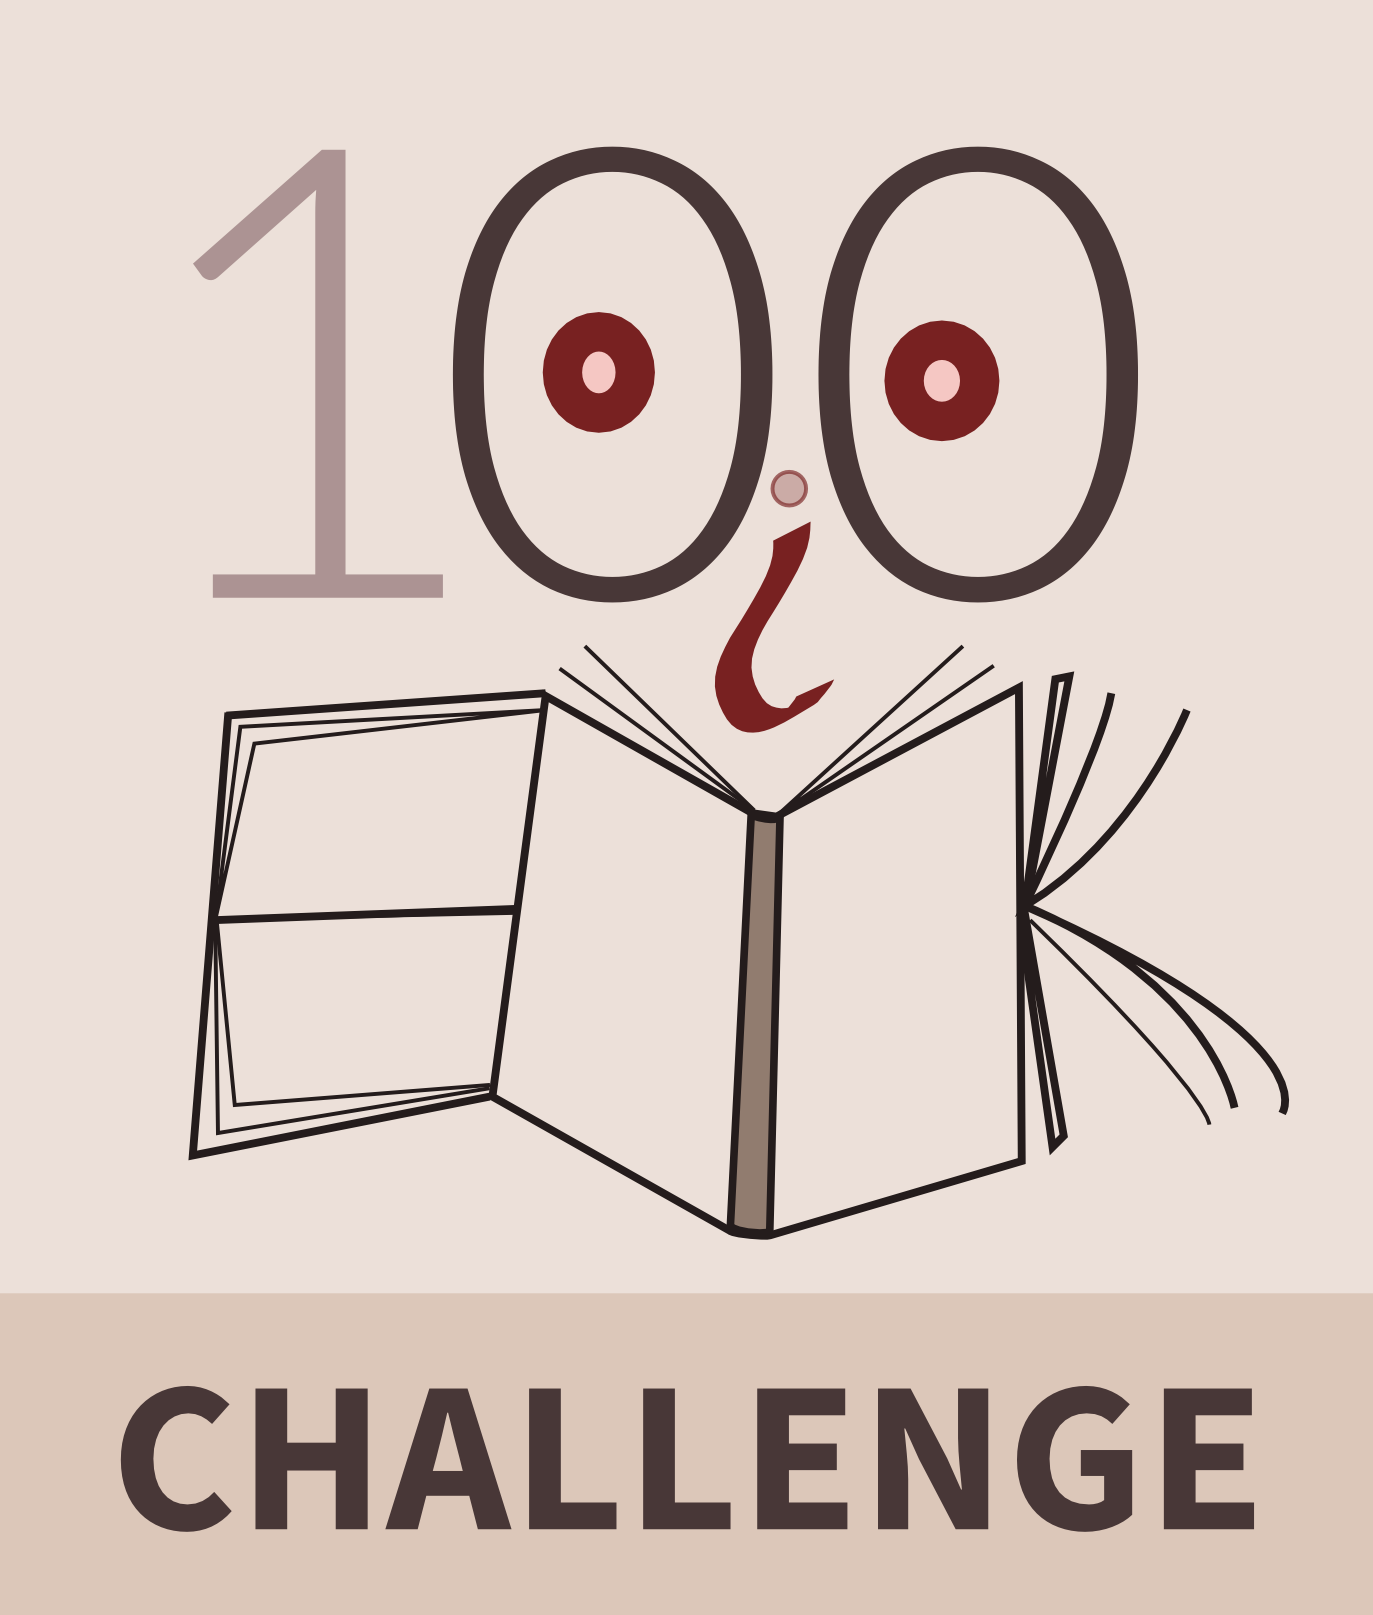 100 Book Challenge Cartoon